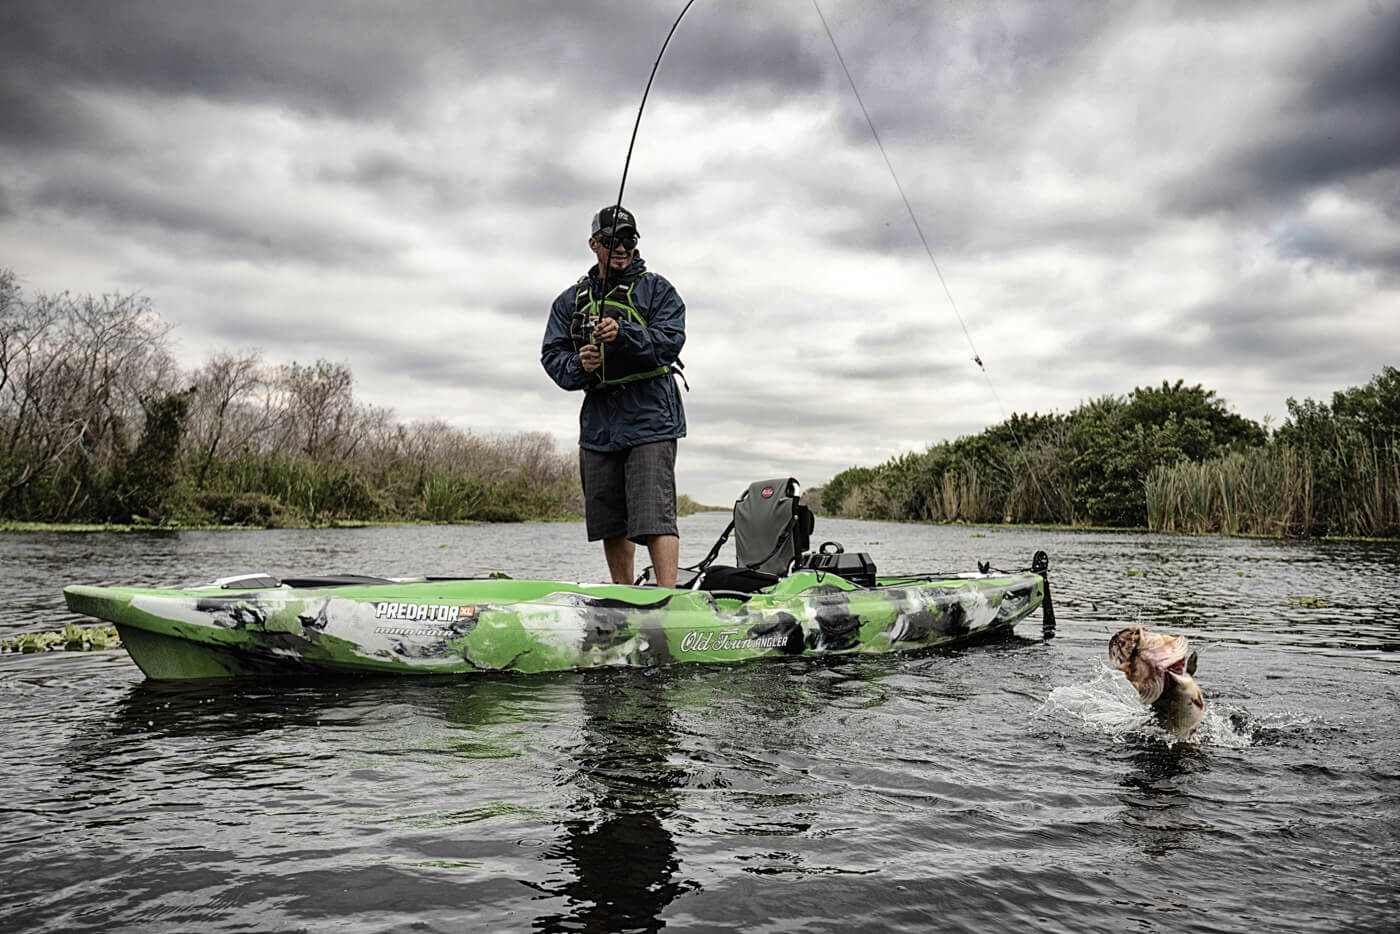 Big-lake anglers need a craft that will get you through the most challenging environments. Jackson Kayak's Kraken 15.5 is shaped to handle big water and get on big fish.